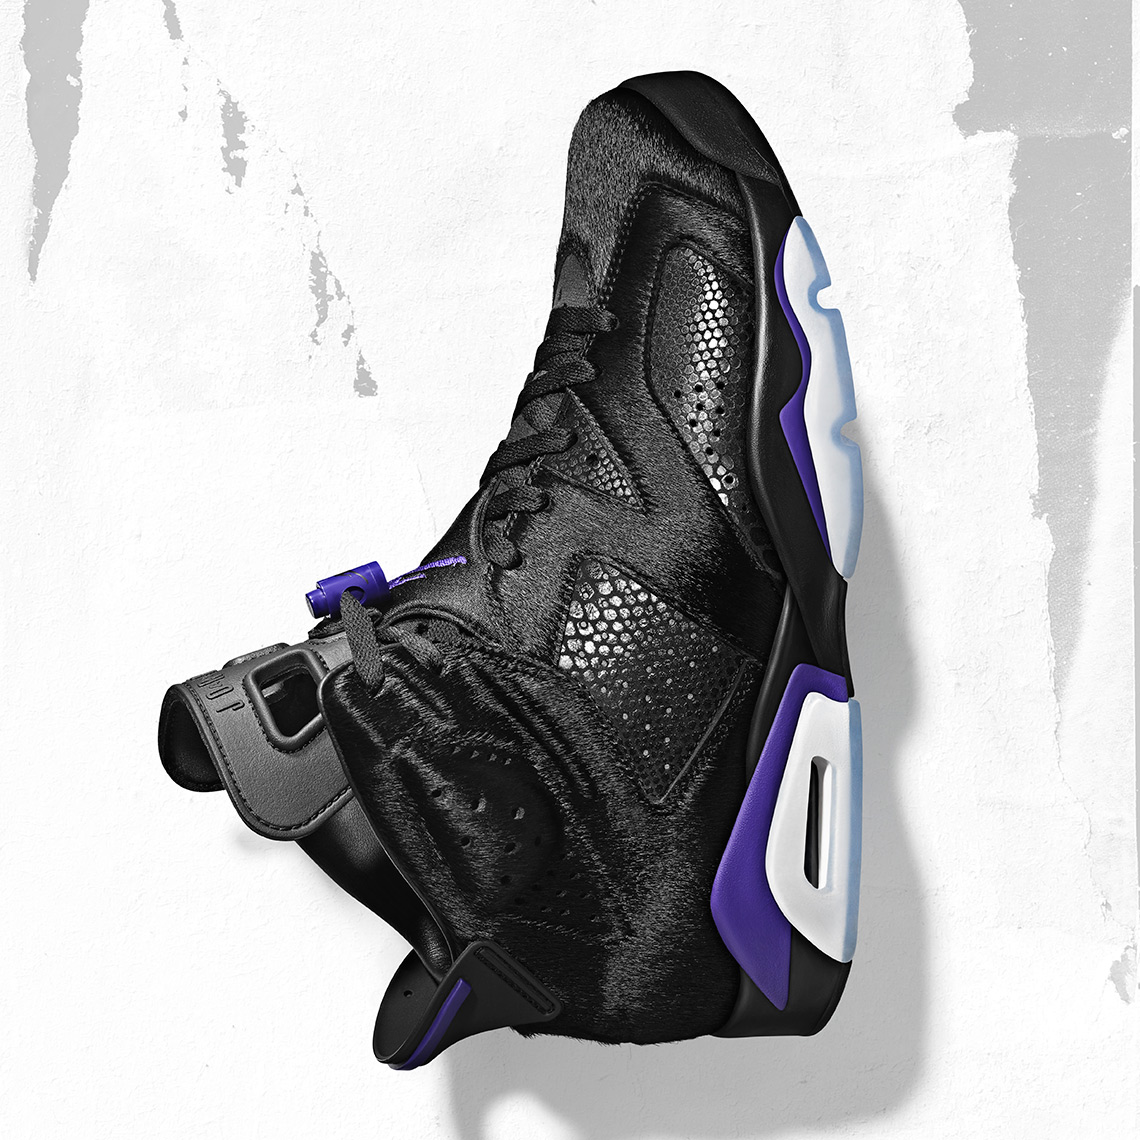 huge discount 7eb54 8e20a Air Jordan 6 NRG Release Date  February 14, 2019  250 span